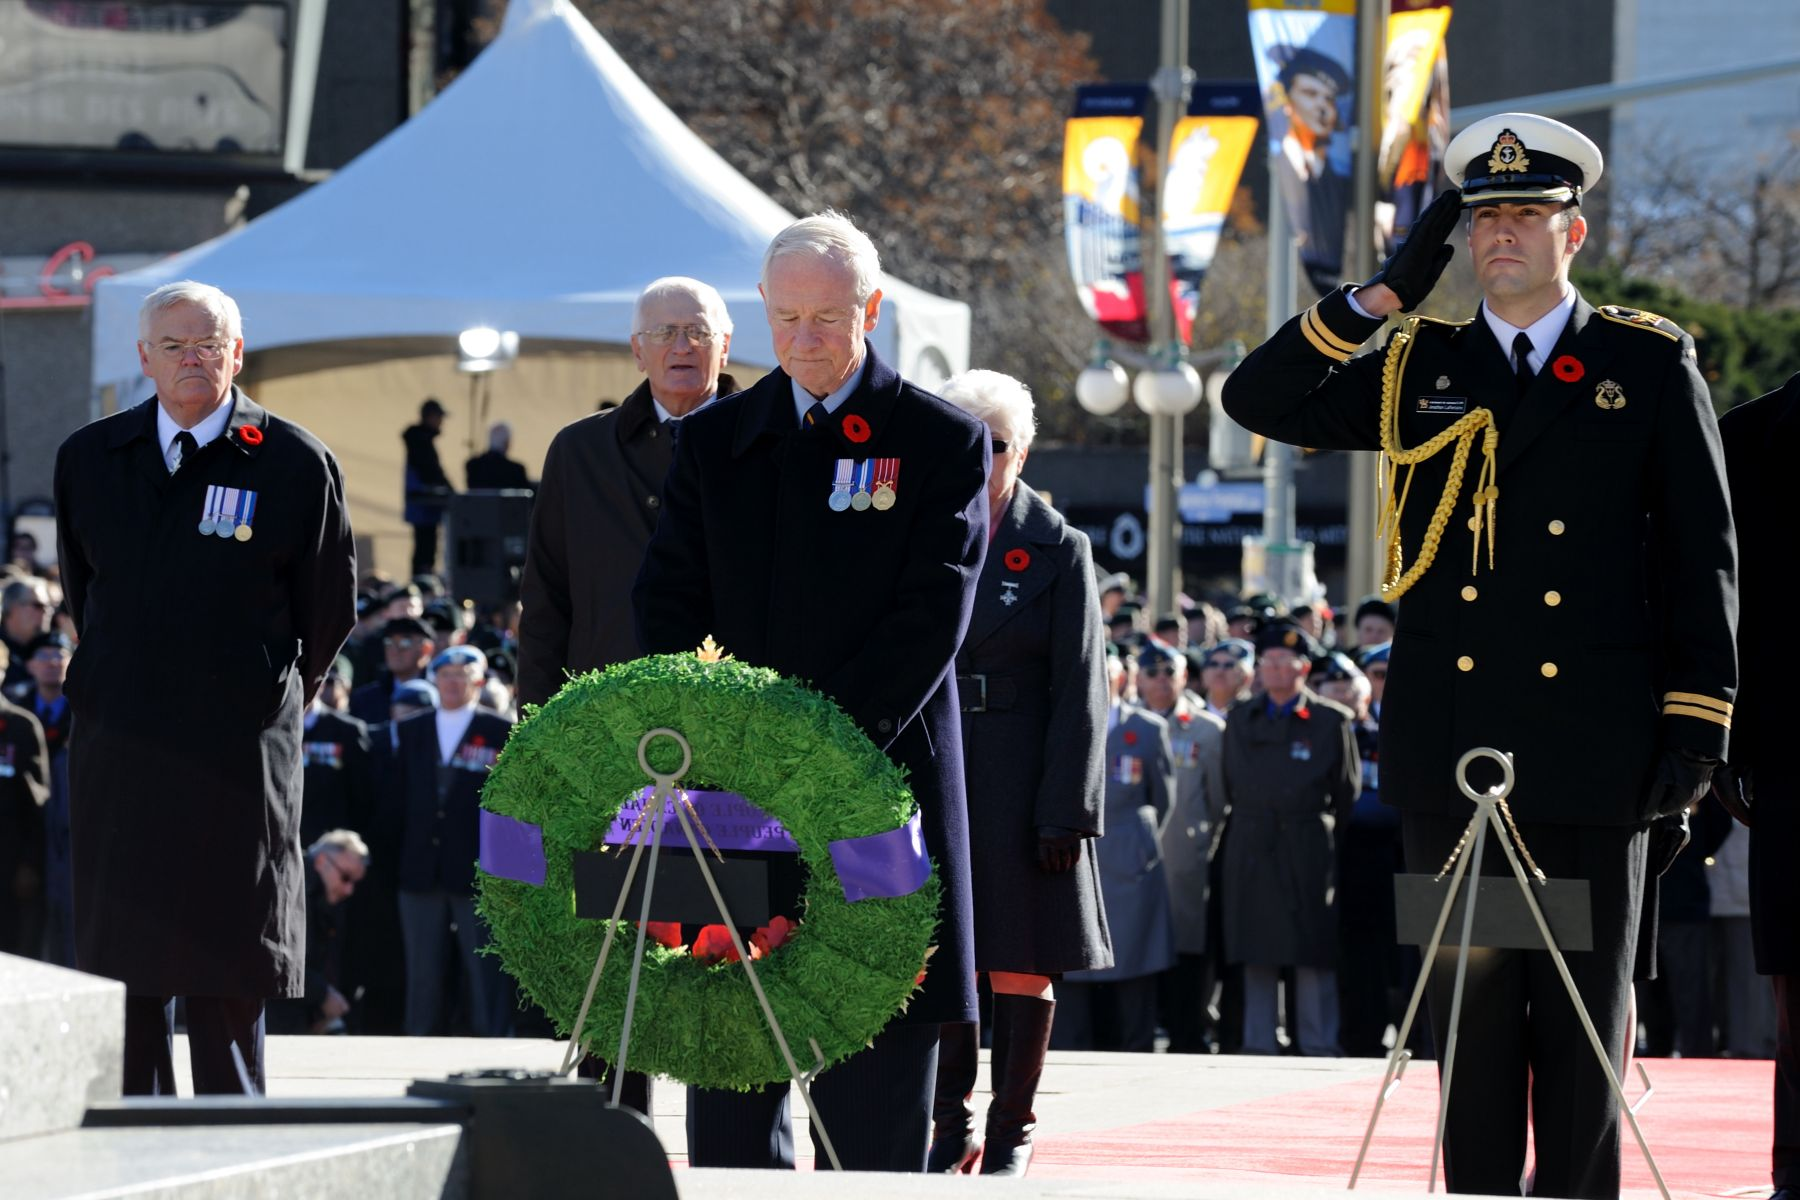 As per tradition, the Governor General laid a wreath at the Tomb of the Unknow Soldier, on behalf of the people of Canada.